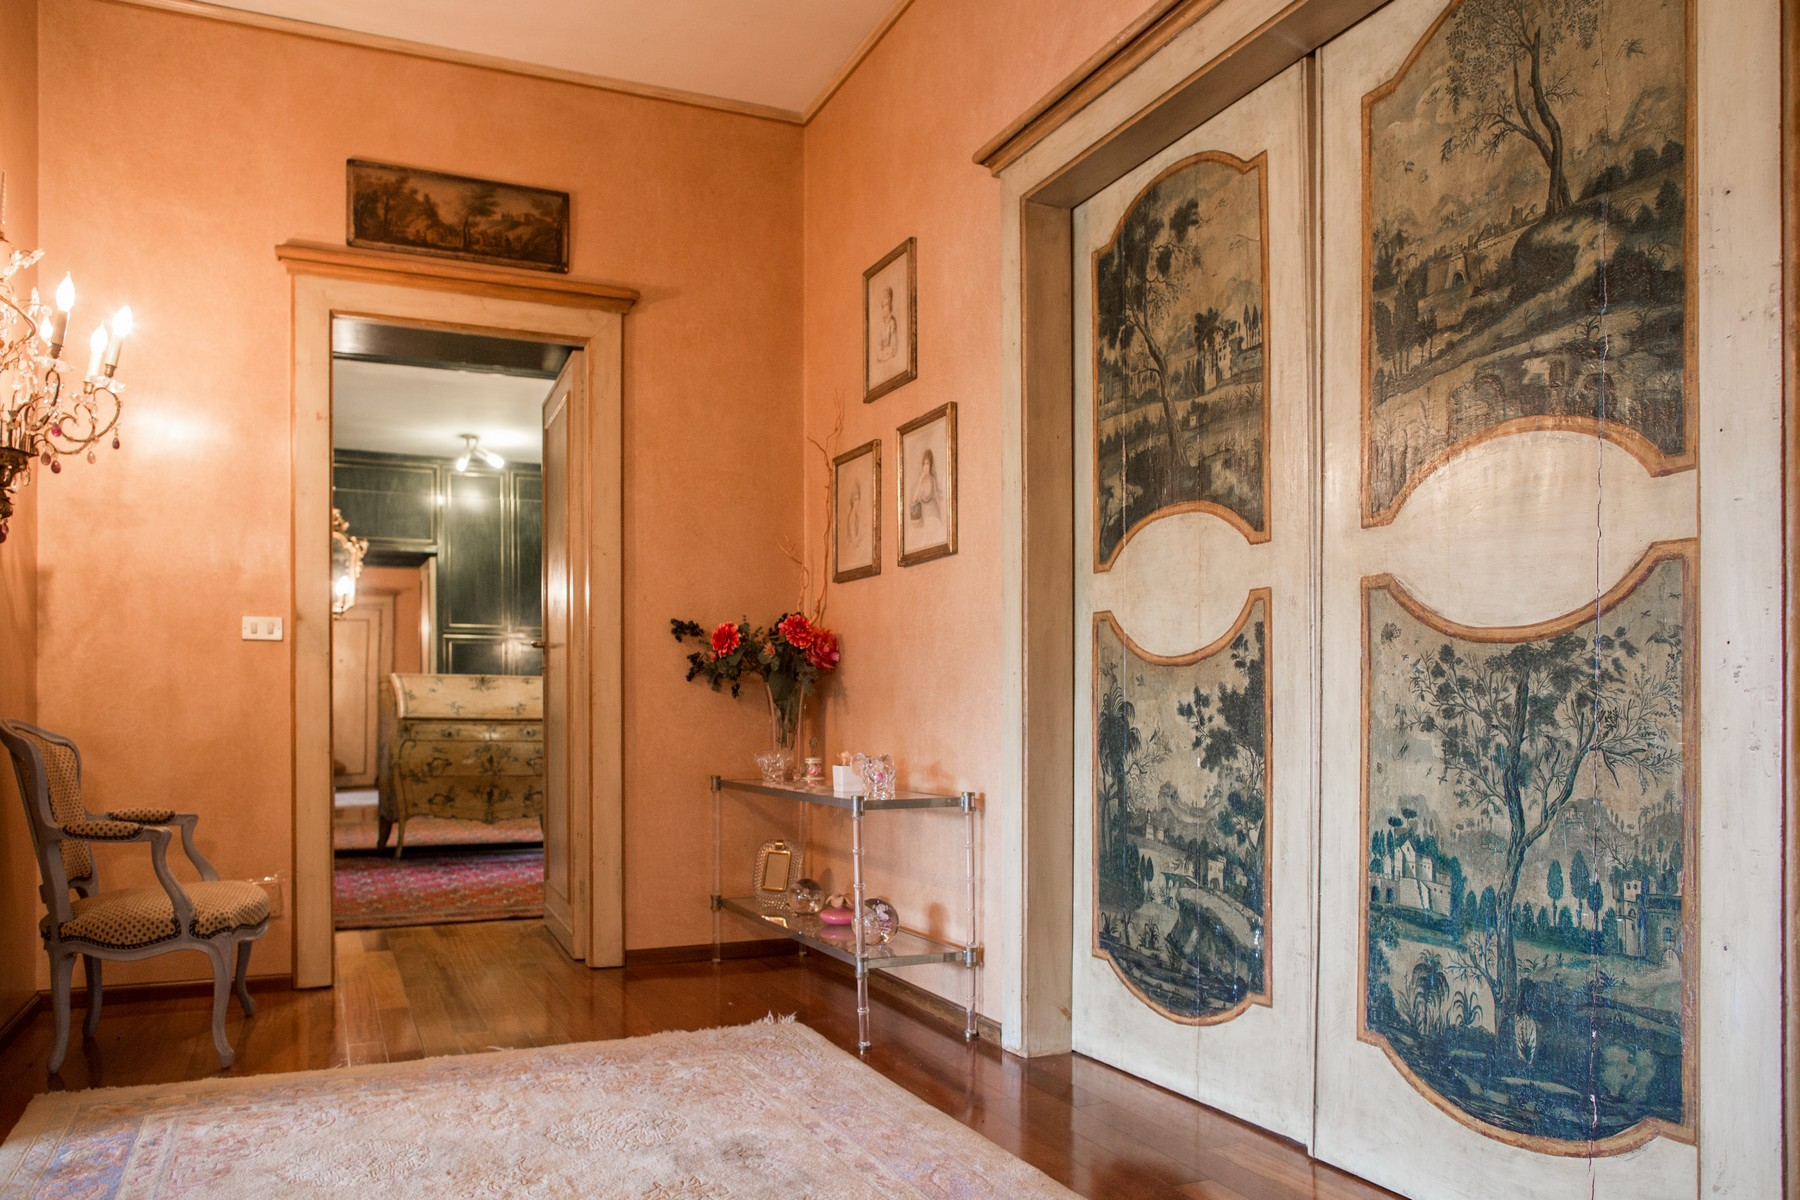 Additional photo for property listing at Elegant apartment on Turin hill Strada San Vincenzo Torino, Turin 10131 Italie